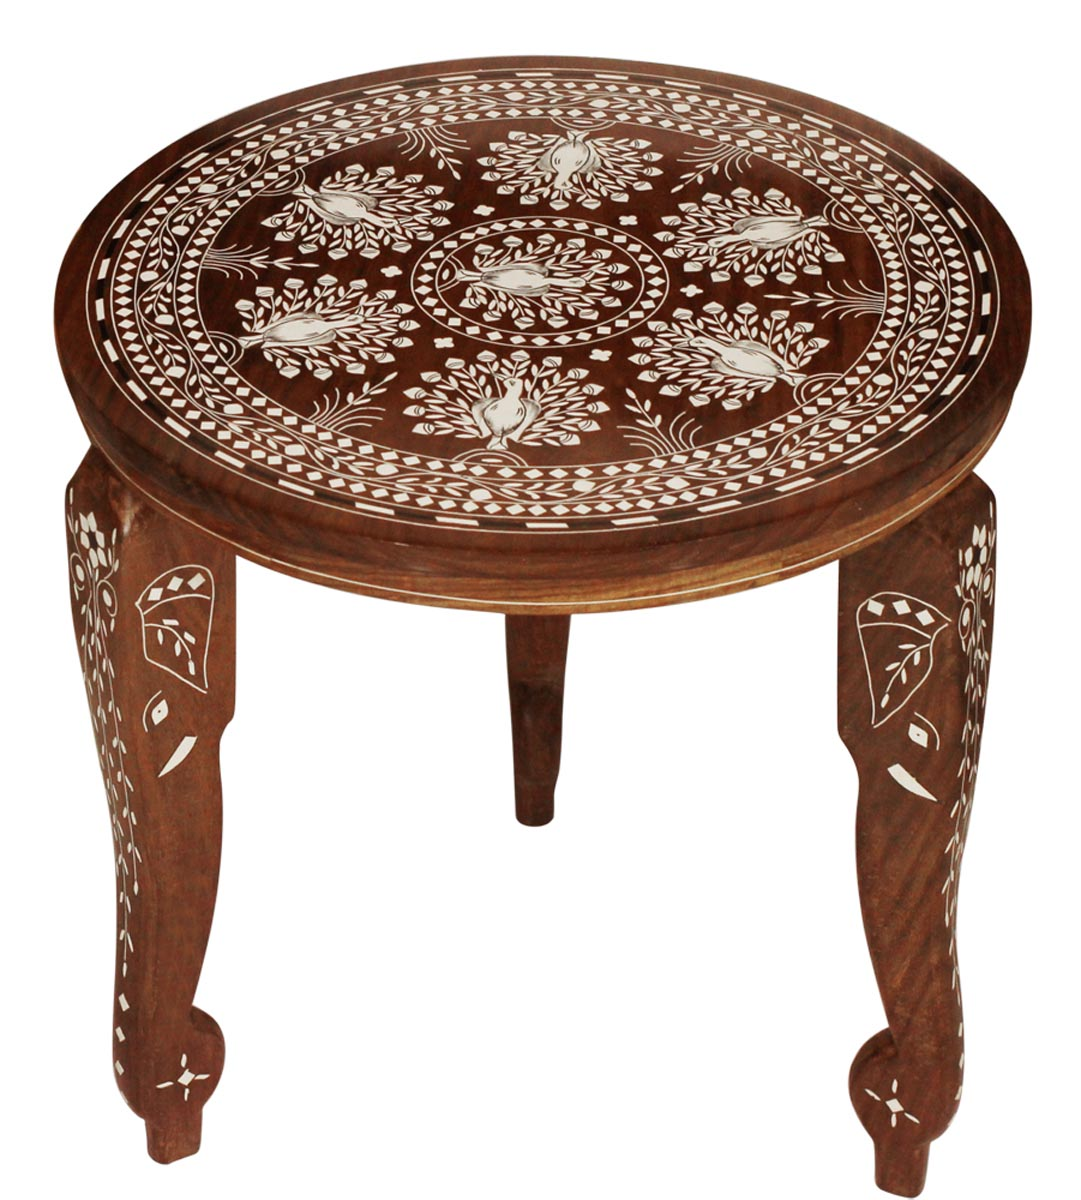 whole leg stand round wooden accent table with removable legs peacock motifs ikea shelves pottery barn mahogany coffee farmhouse dining globe lamp wine rack kitchen marble side